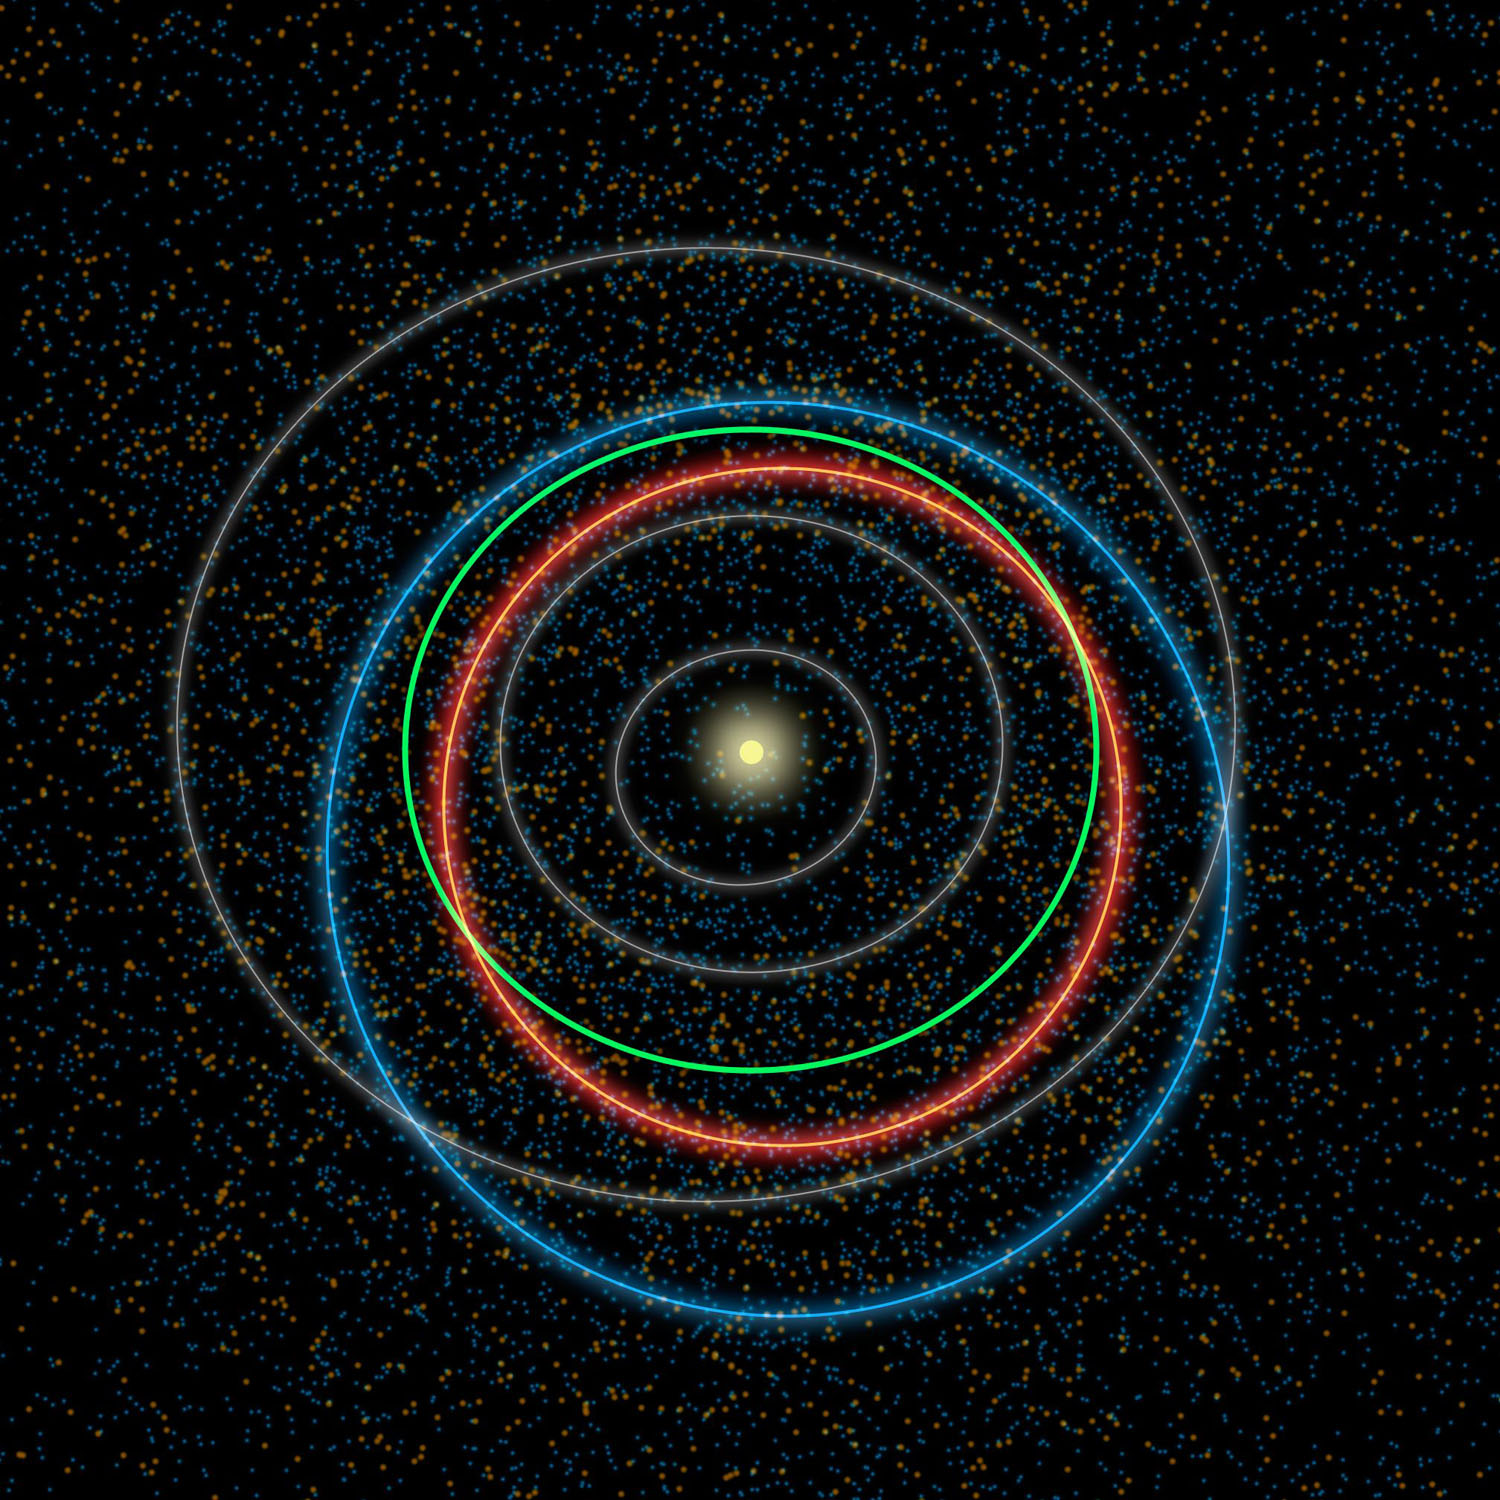 differences between orbits of a typical near-Earth asteroid (blue) and a potentially hazardous asteroid, or PHA